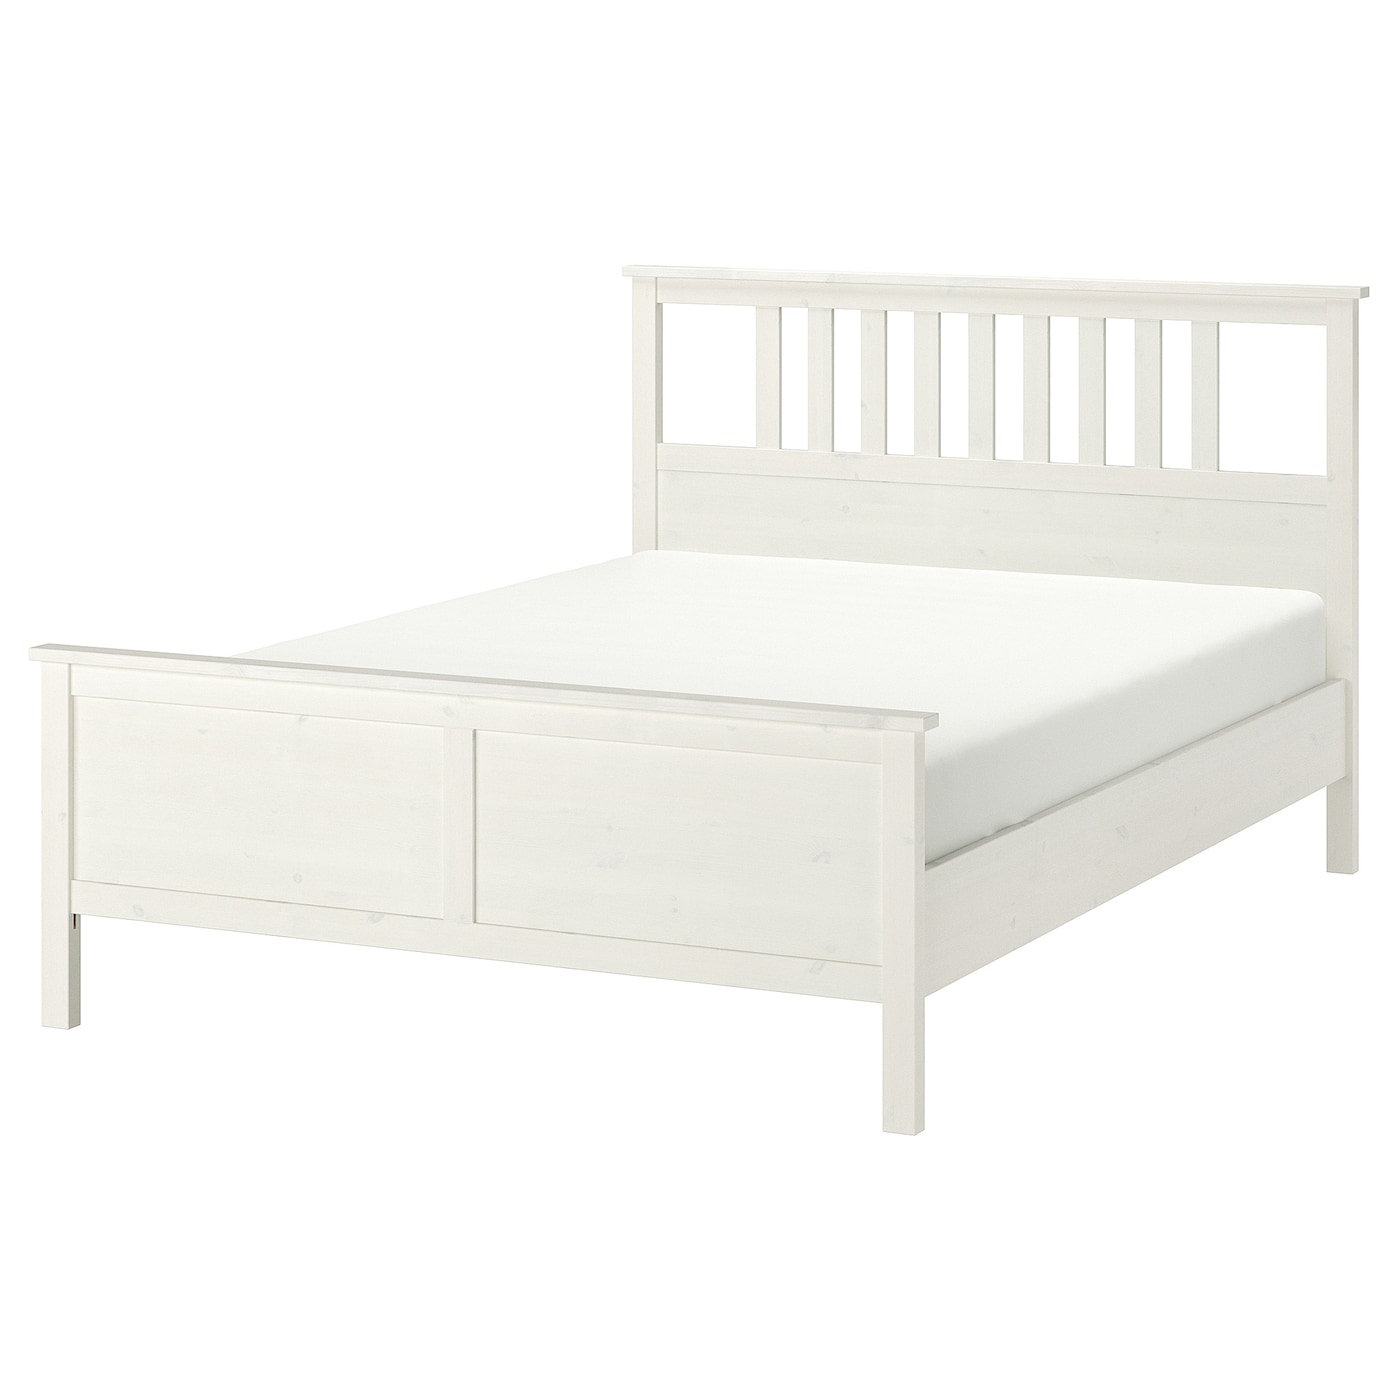 How Big Is A Super King Bed Super King Size Beds Ikea